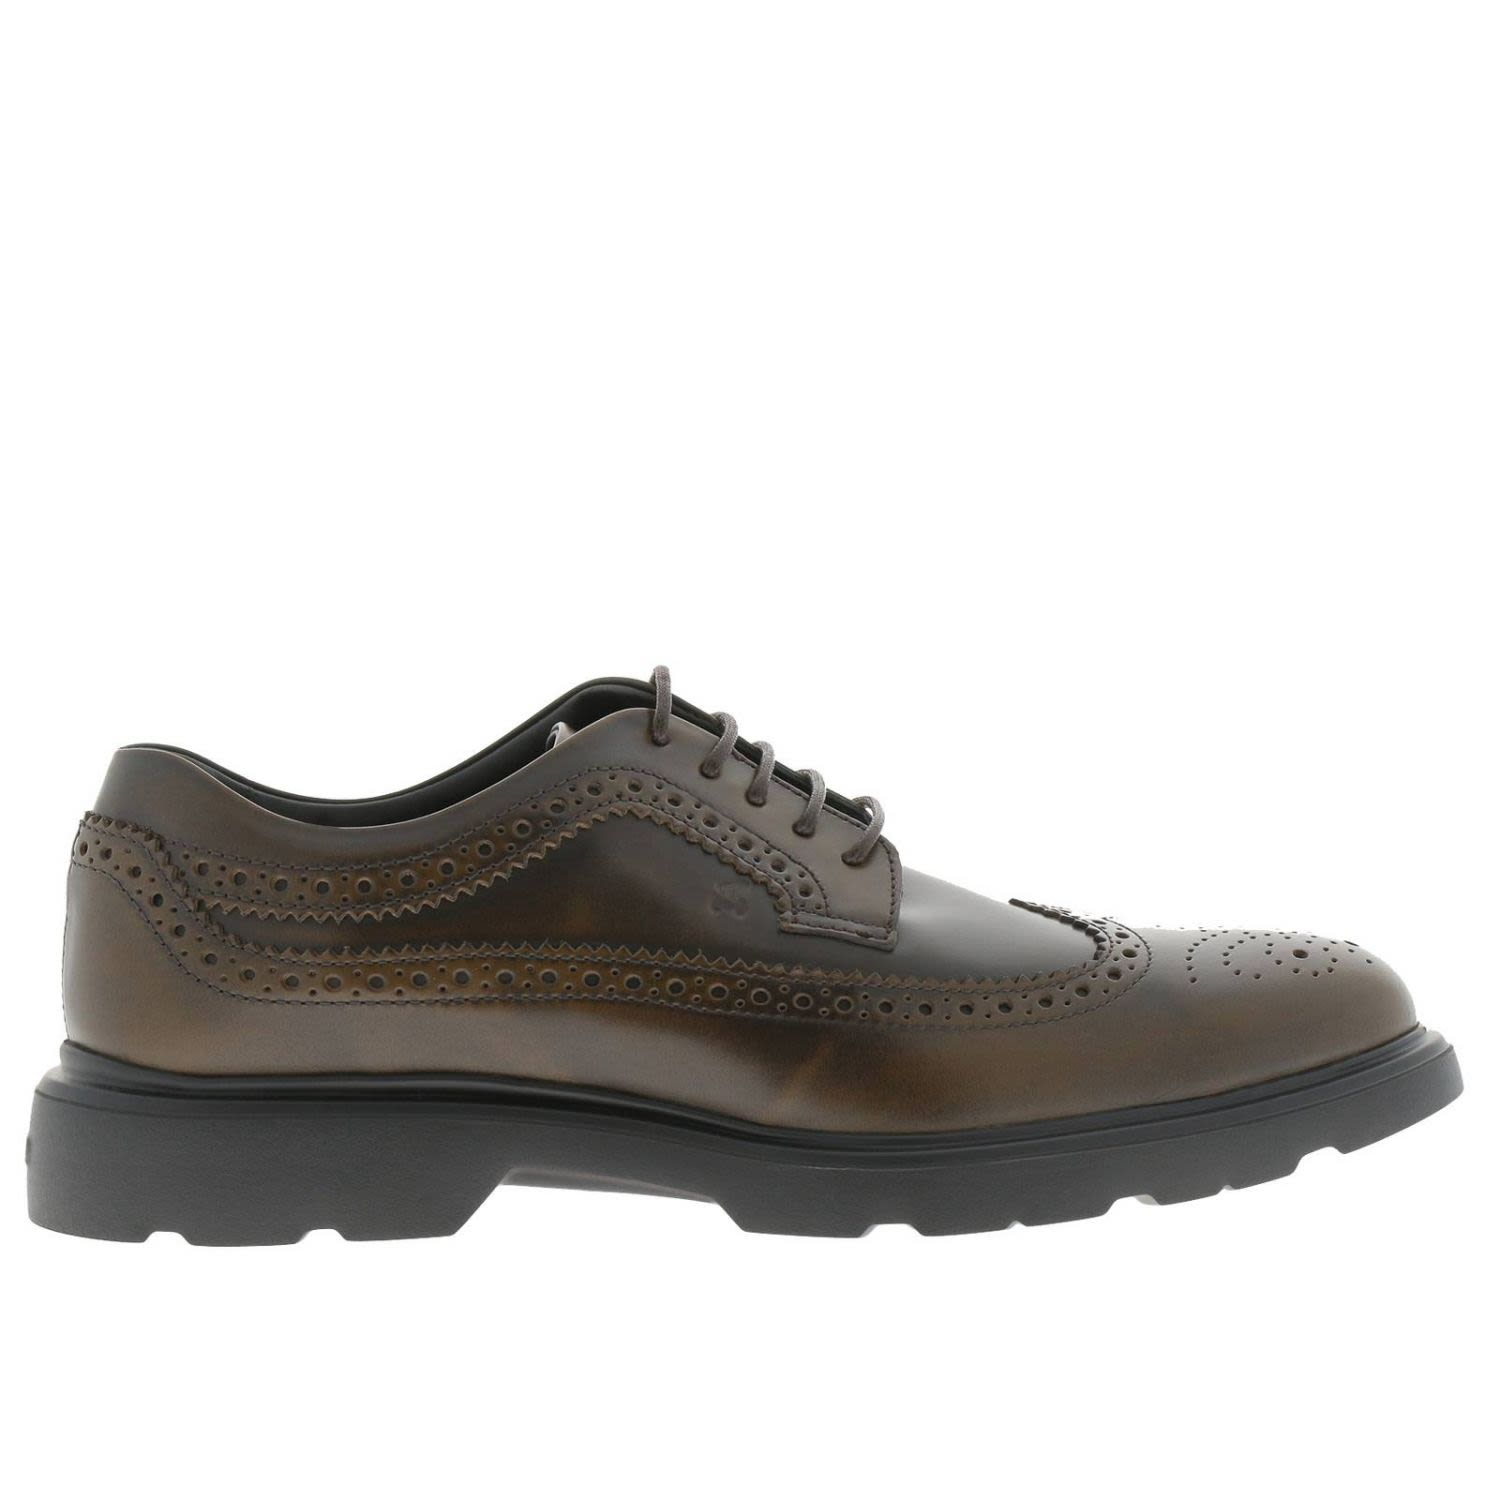 BROGUE SHOES SHOES MEN HOGAN